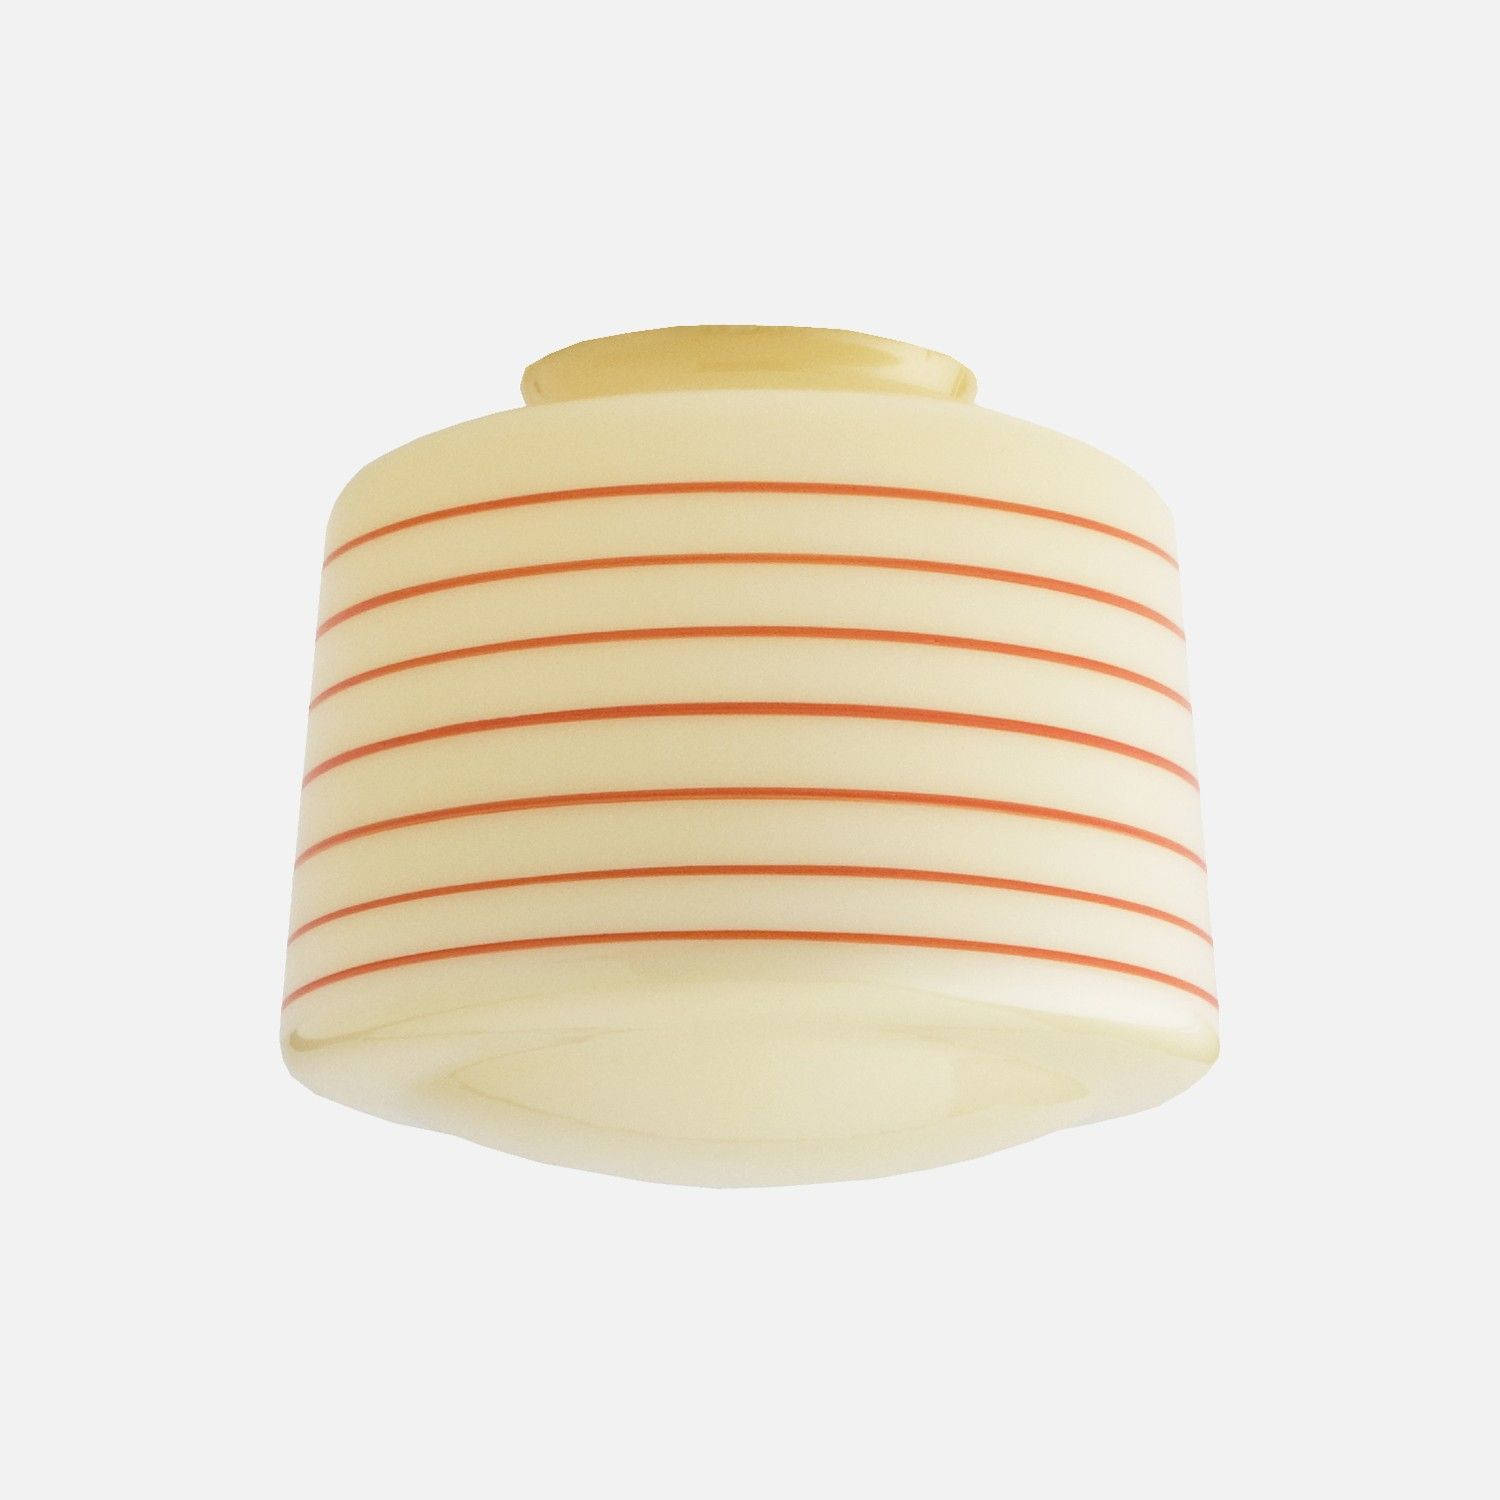 Cute Shades For Those Builder Grade Fixtures Nice Online Retailer Schoolhouse Electric Supply Co Lighting School House Lighting Electric Shades